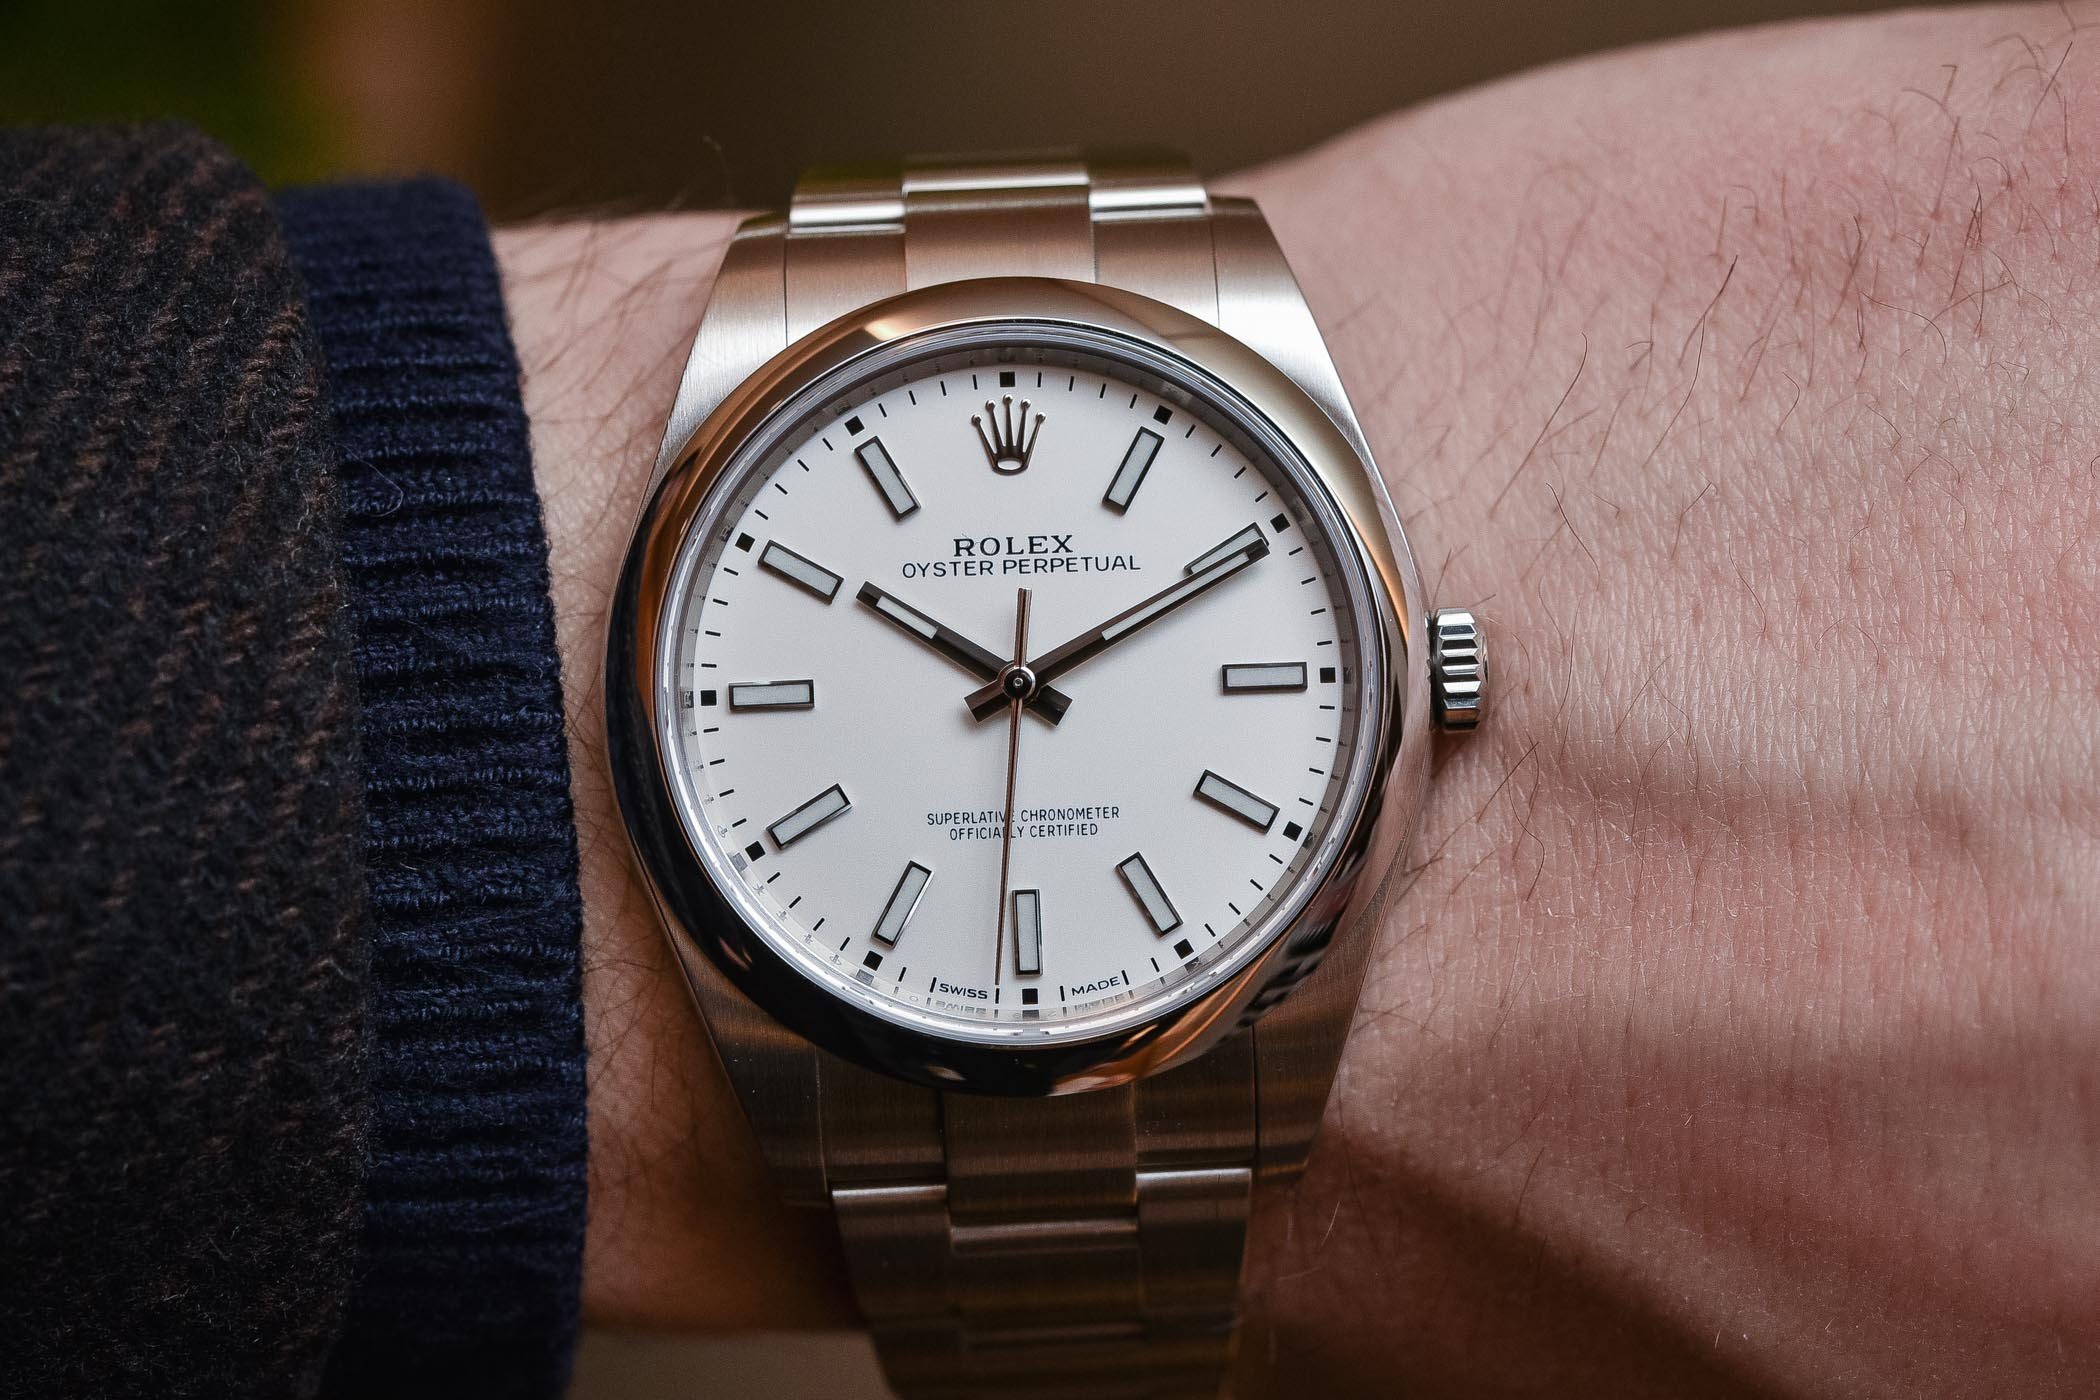 642d985f592 Rolex Oyster Perpetual 39 Ref. 114300 White Dial - Baselworld 2018 ...